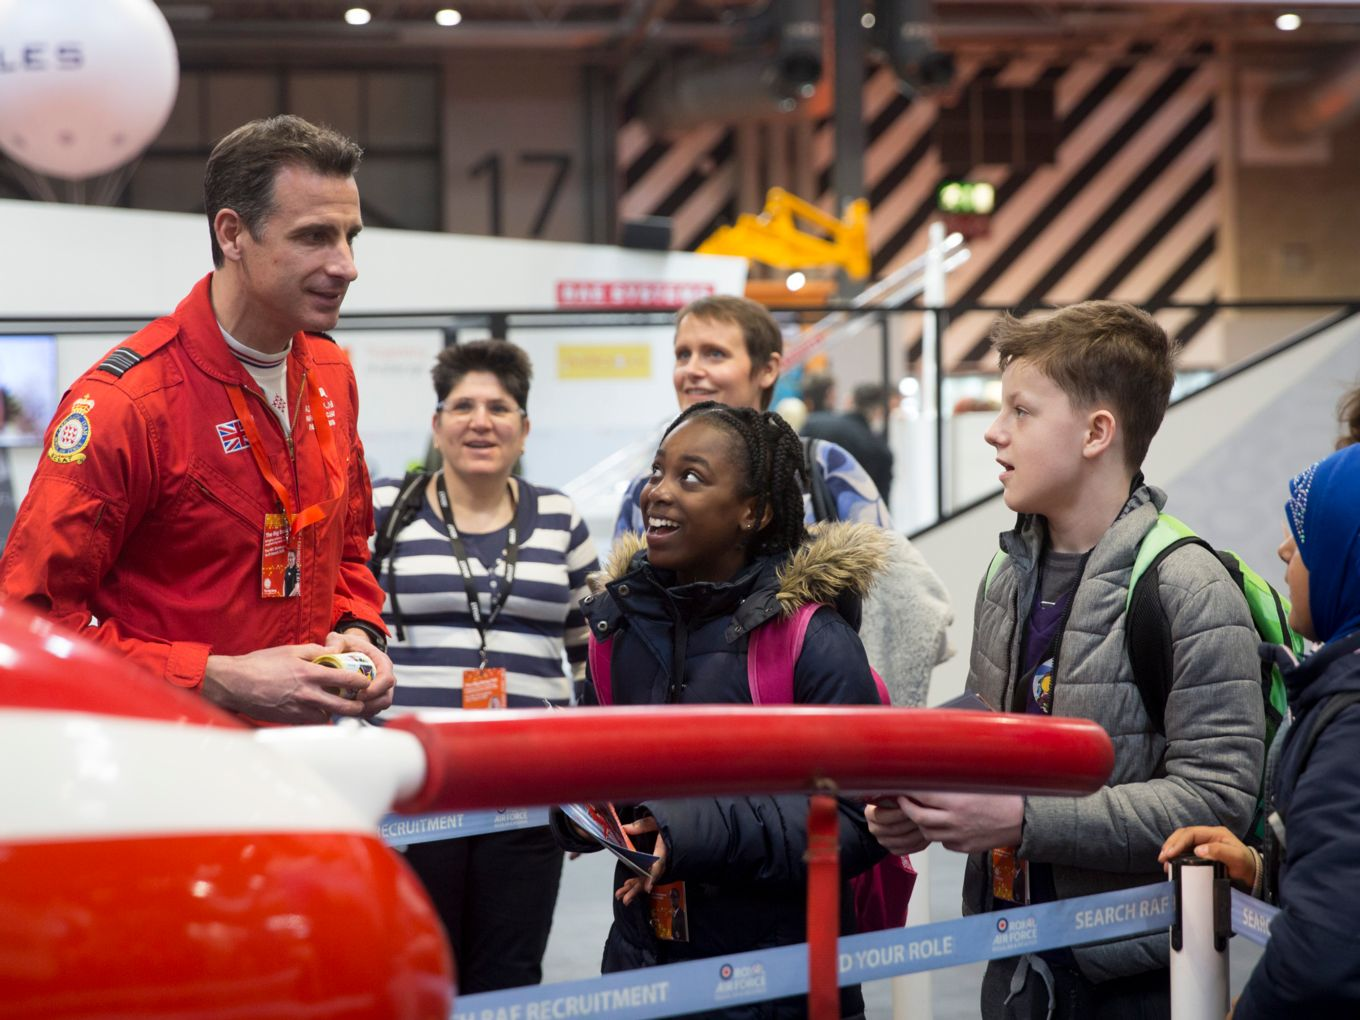 Red Arrows pilot talking with students